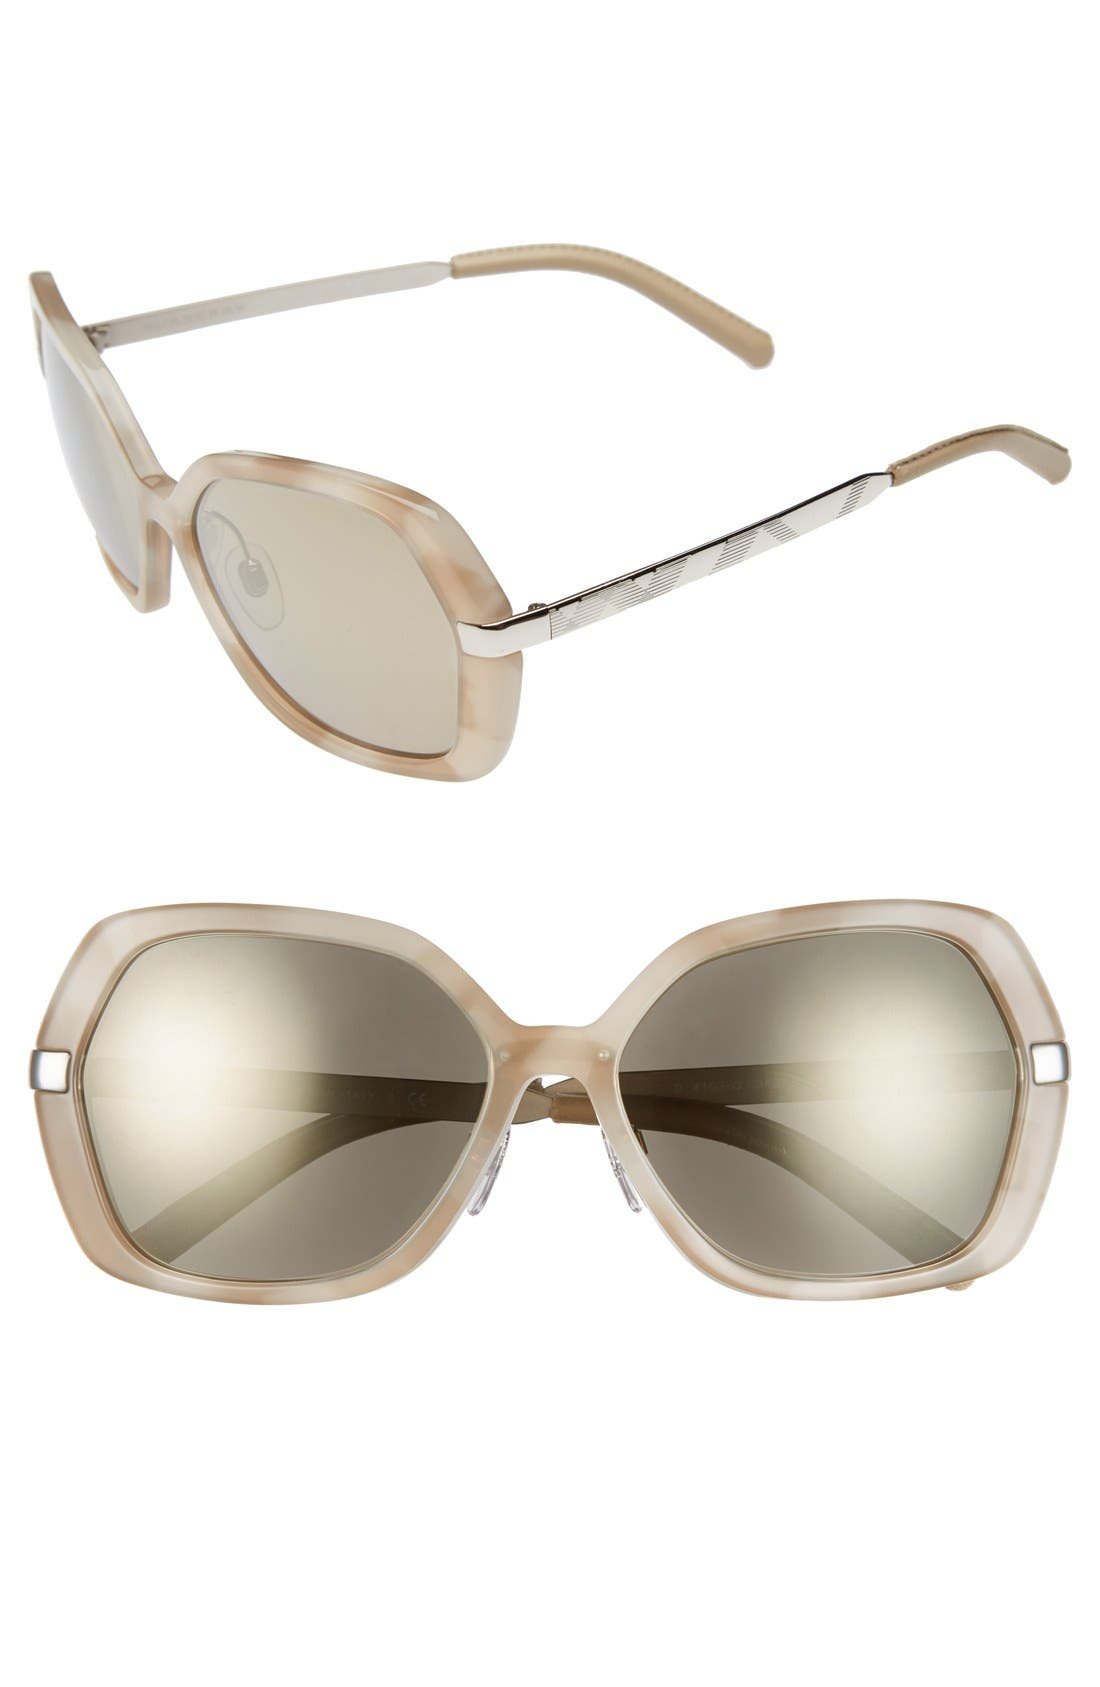 Alternate Image 1 Selected - Burberry 'Classic' 58mm Sunglasses